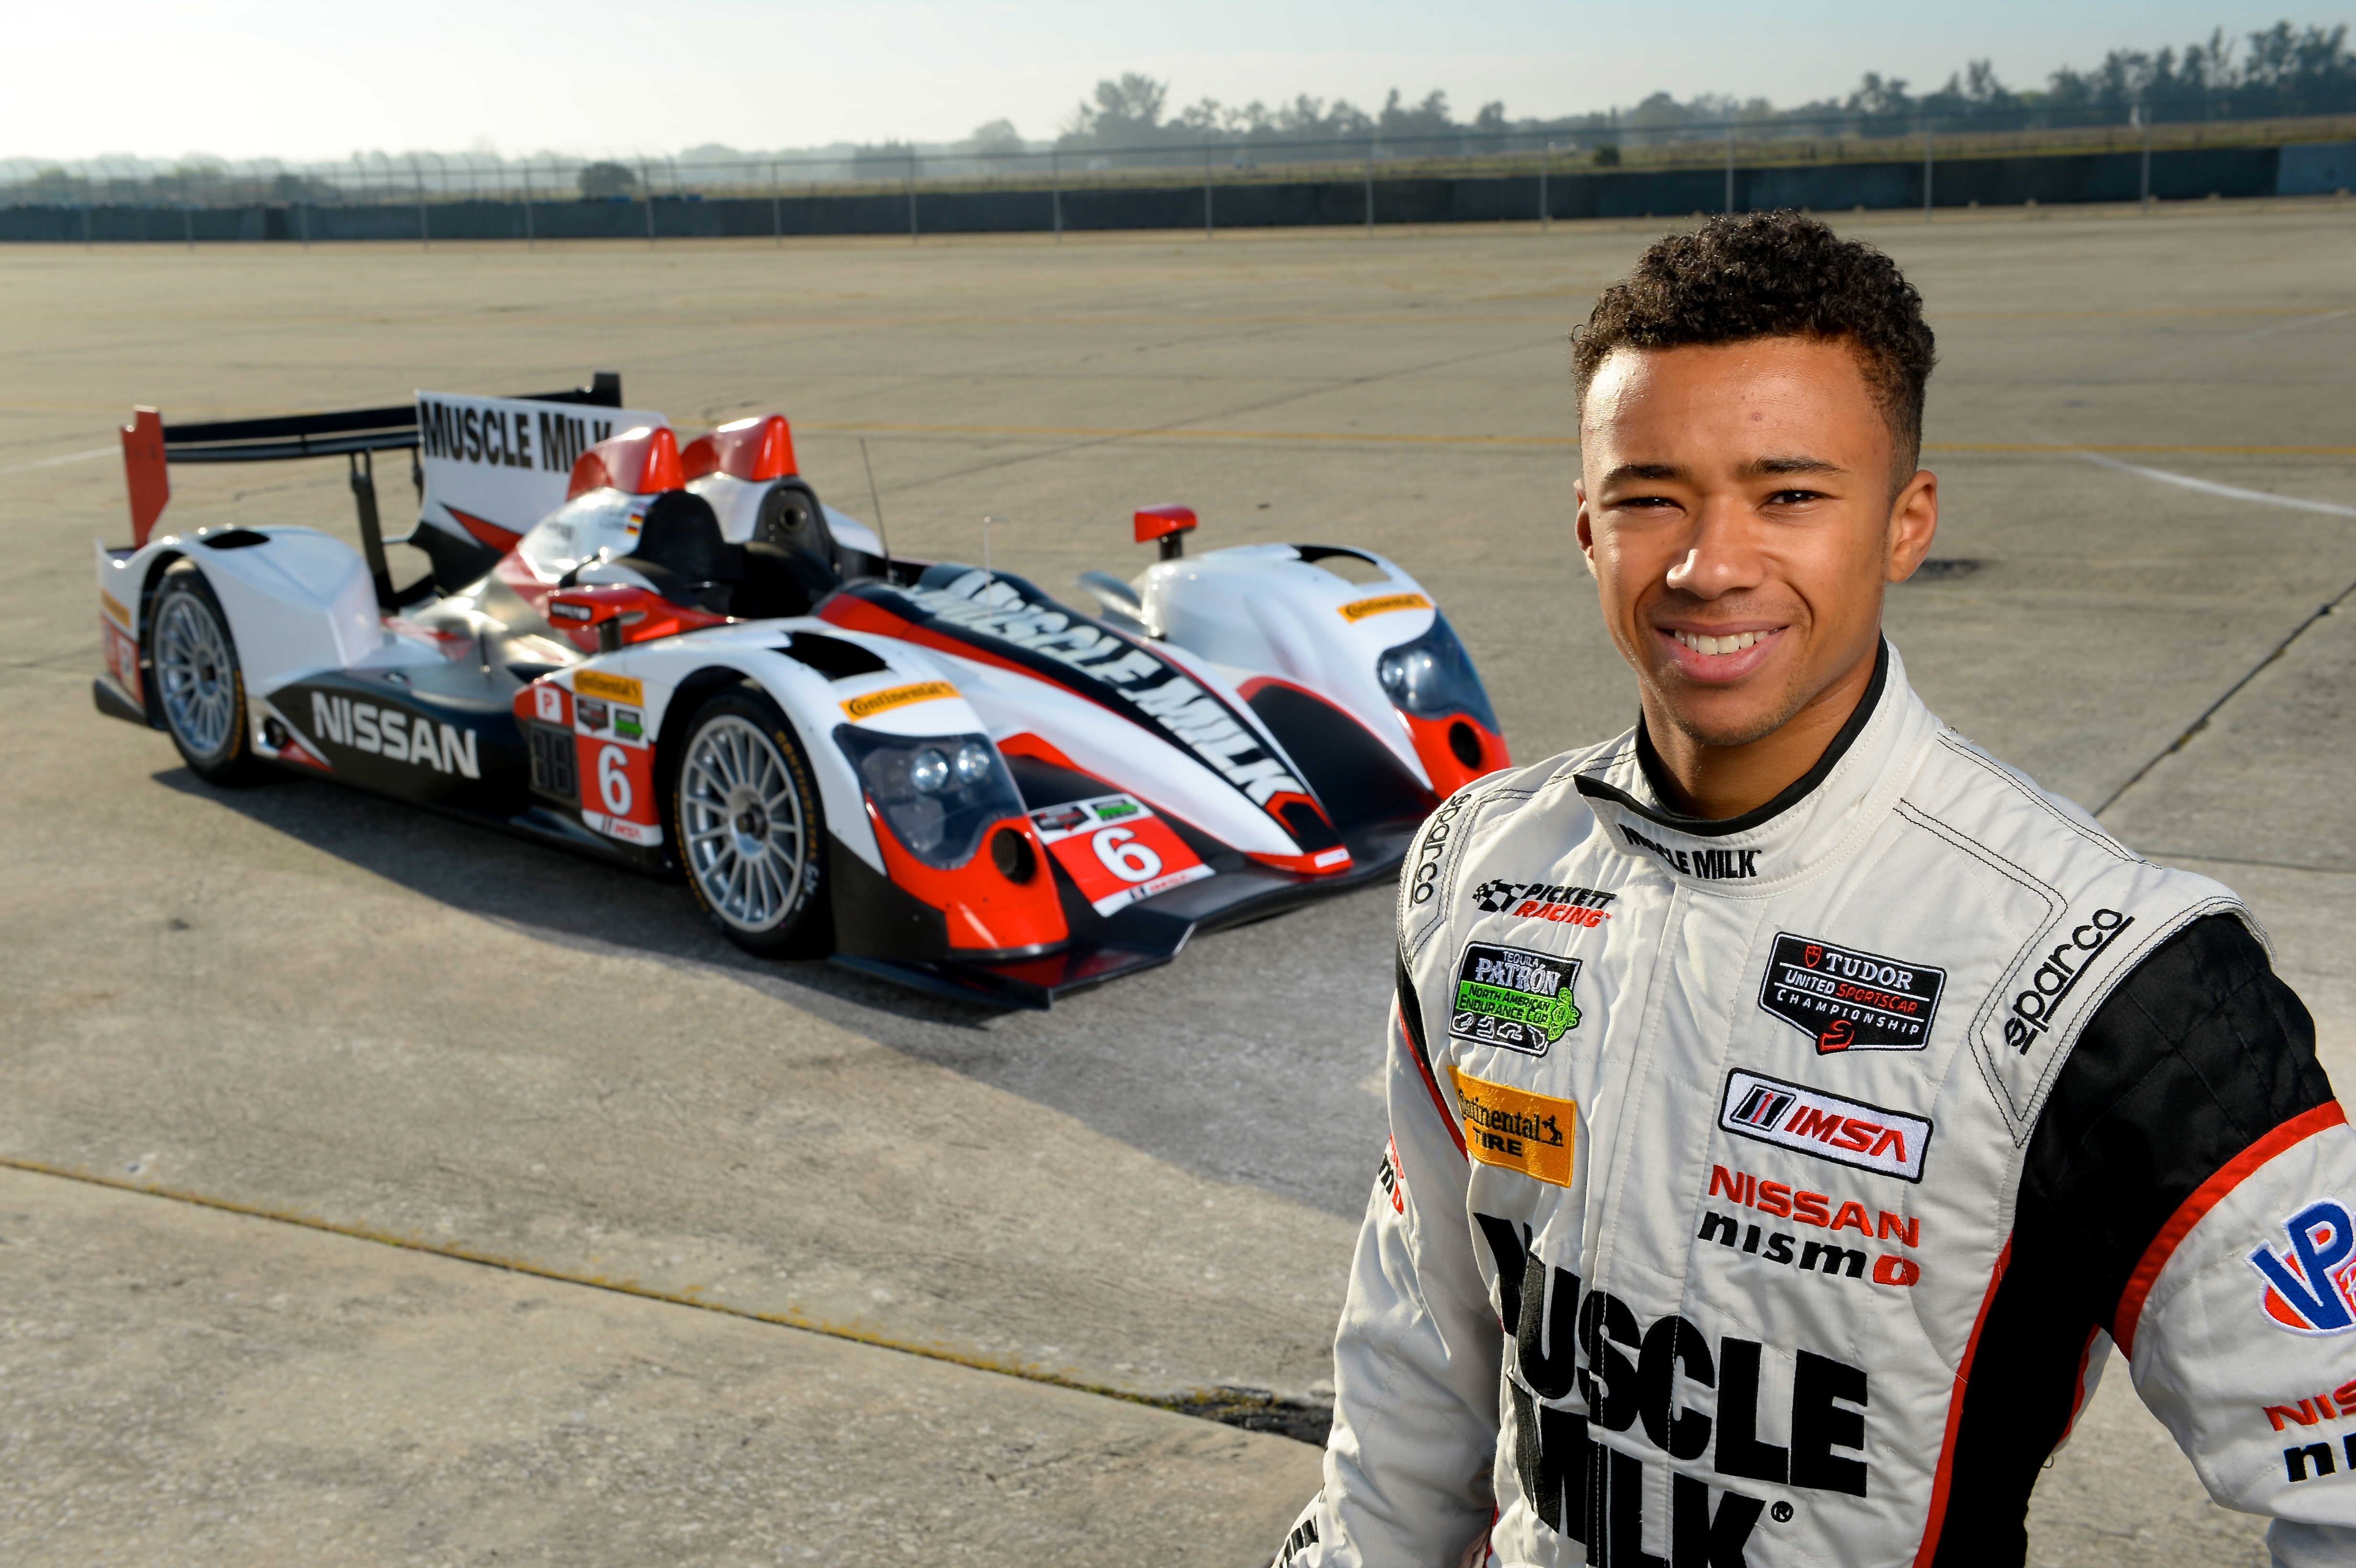 Nissan's gamer ace joins Muscle Milk